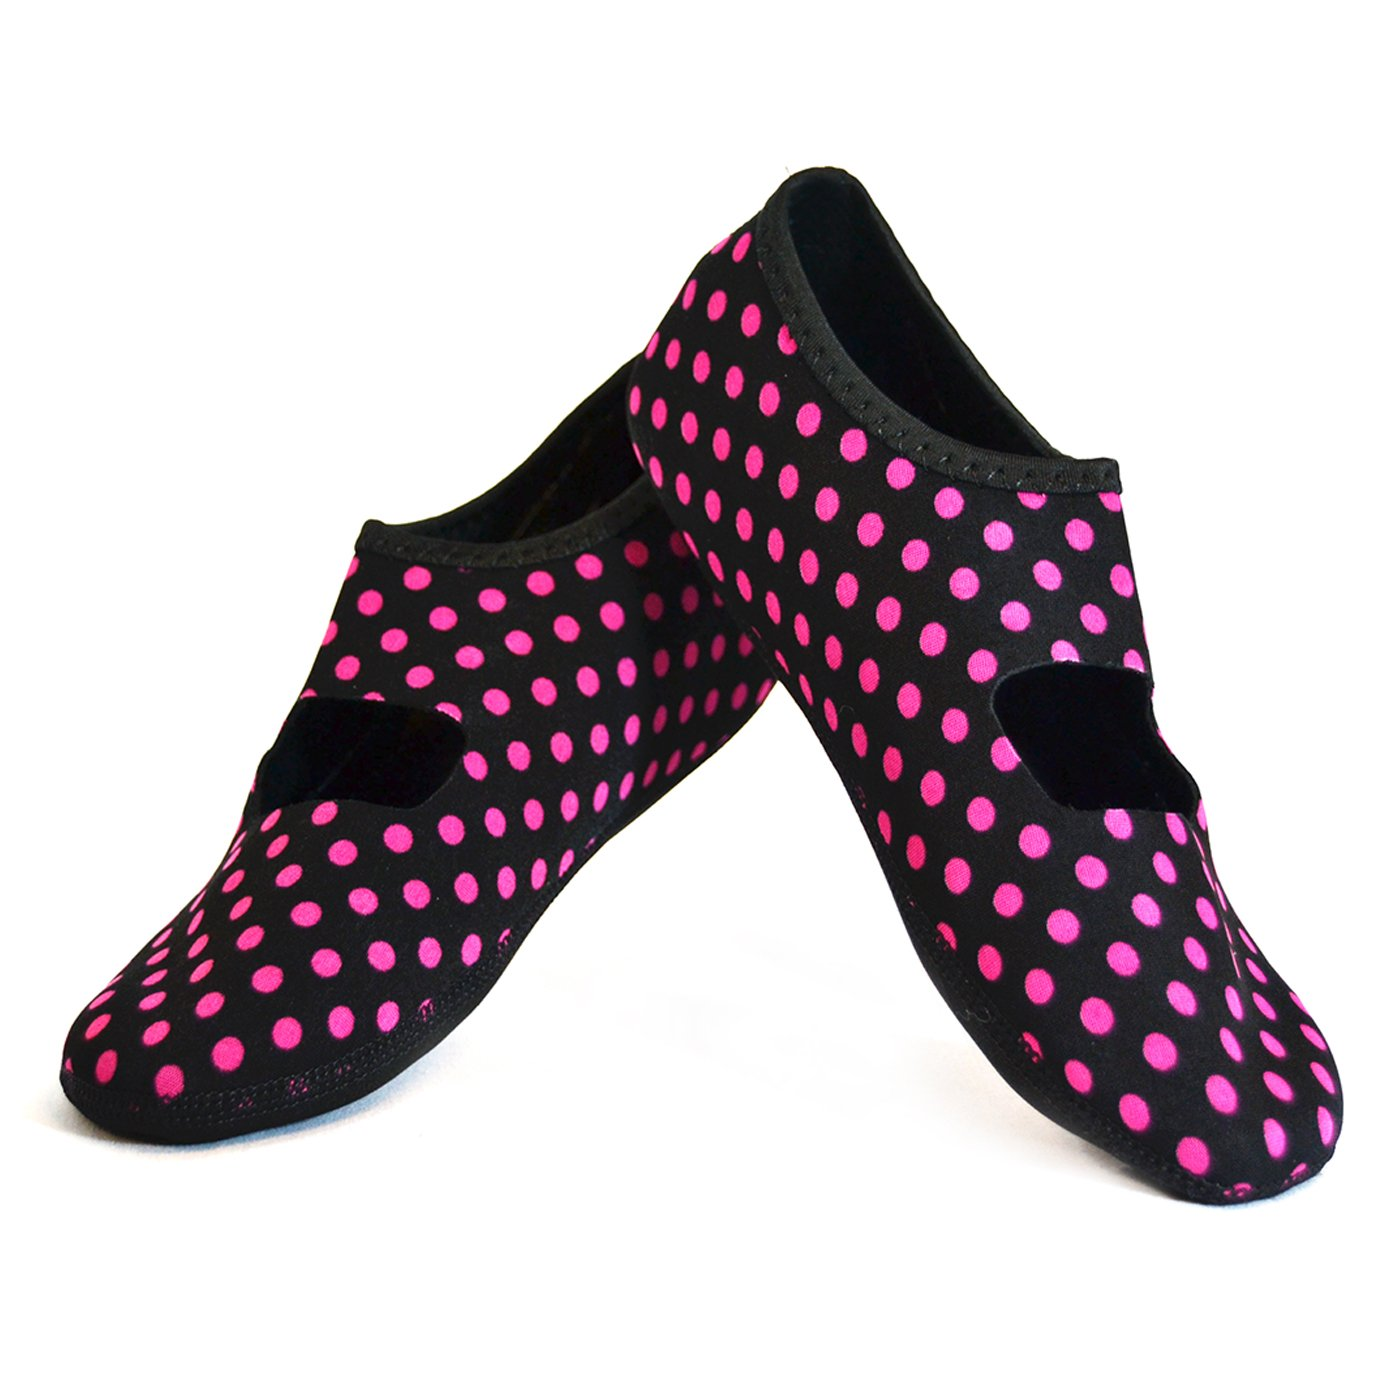 NuFoot Mary Janes Women's Shoes, Best Foldable, Flexible Flats, Slipper Socks, Travel Slippers, Exercise Shoes, Dance Shoes, Yoga Socks, House Shoes, Indoor Slippers, Black/Pink Polka Dot, Extra Large